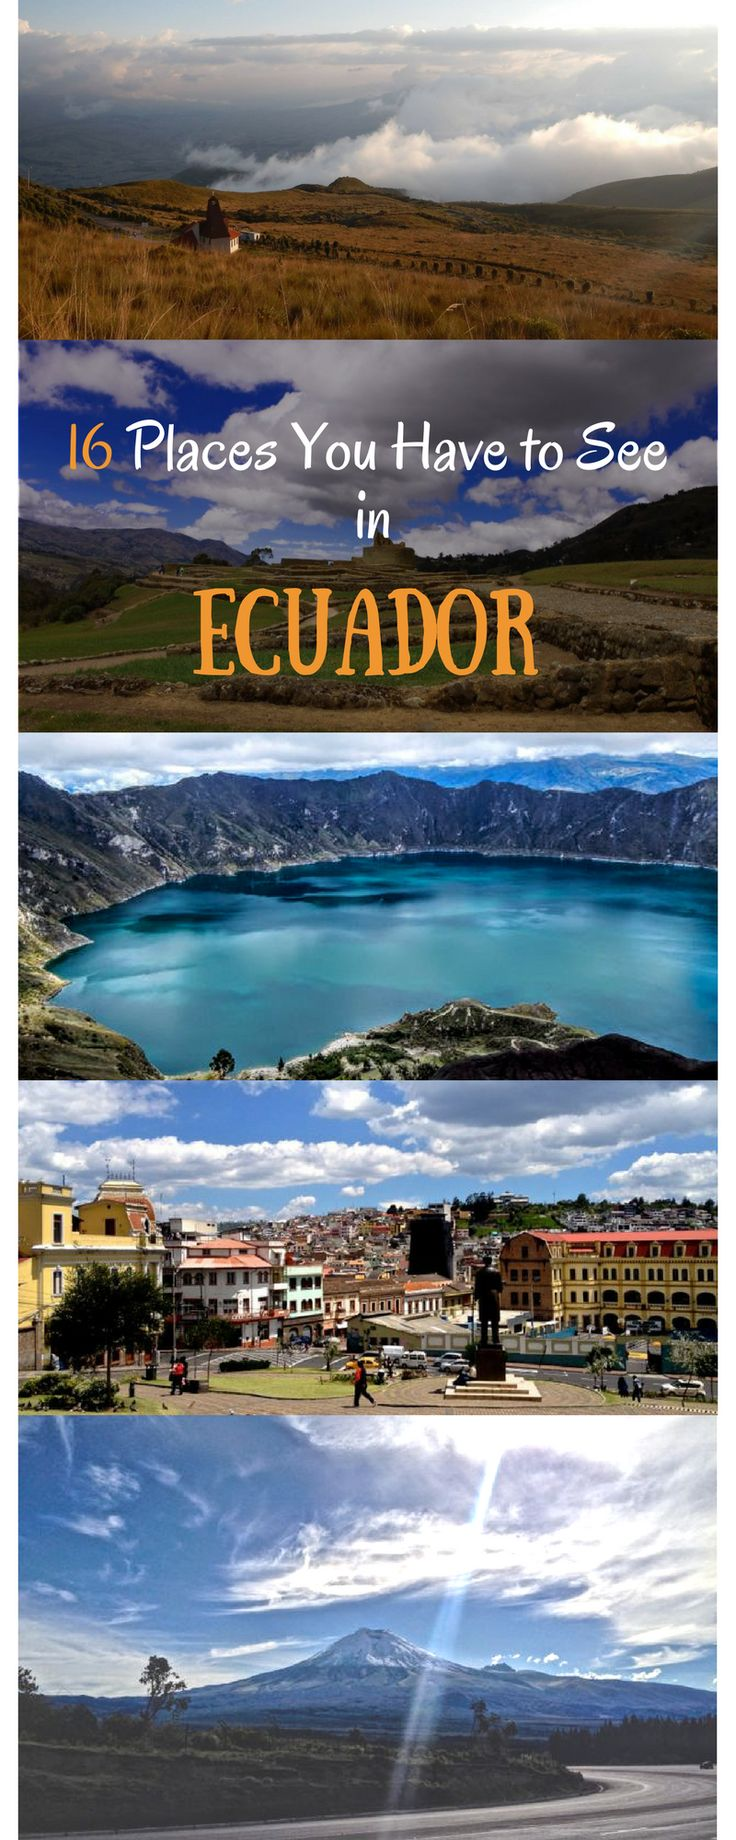 Ecuador! South America!